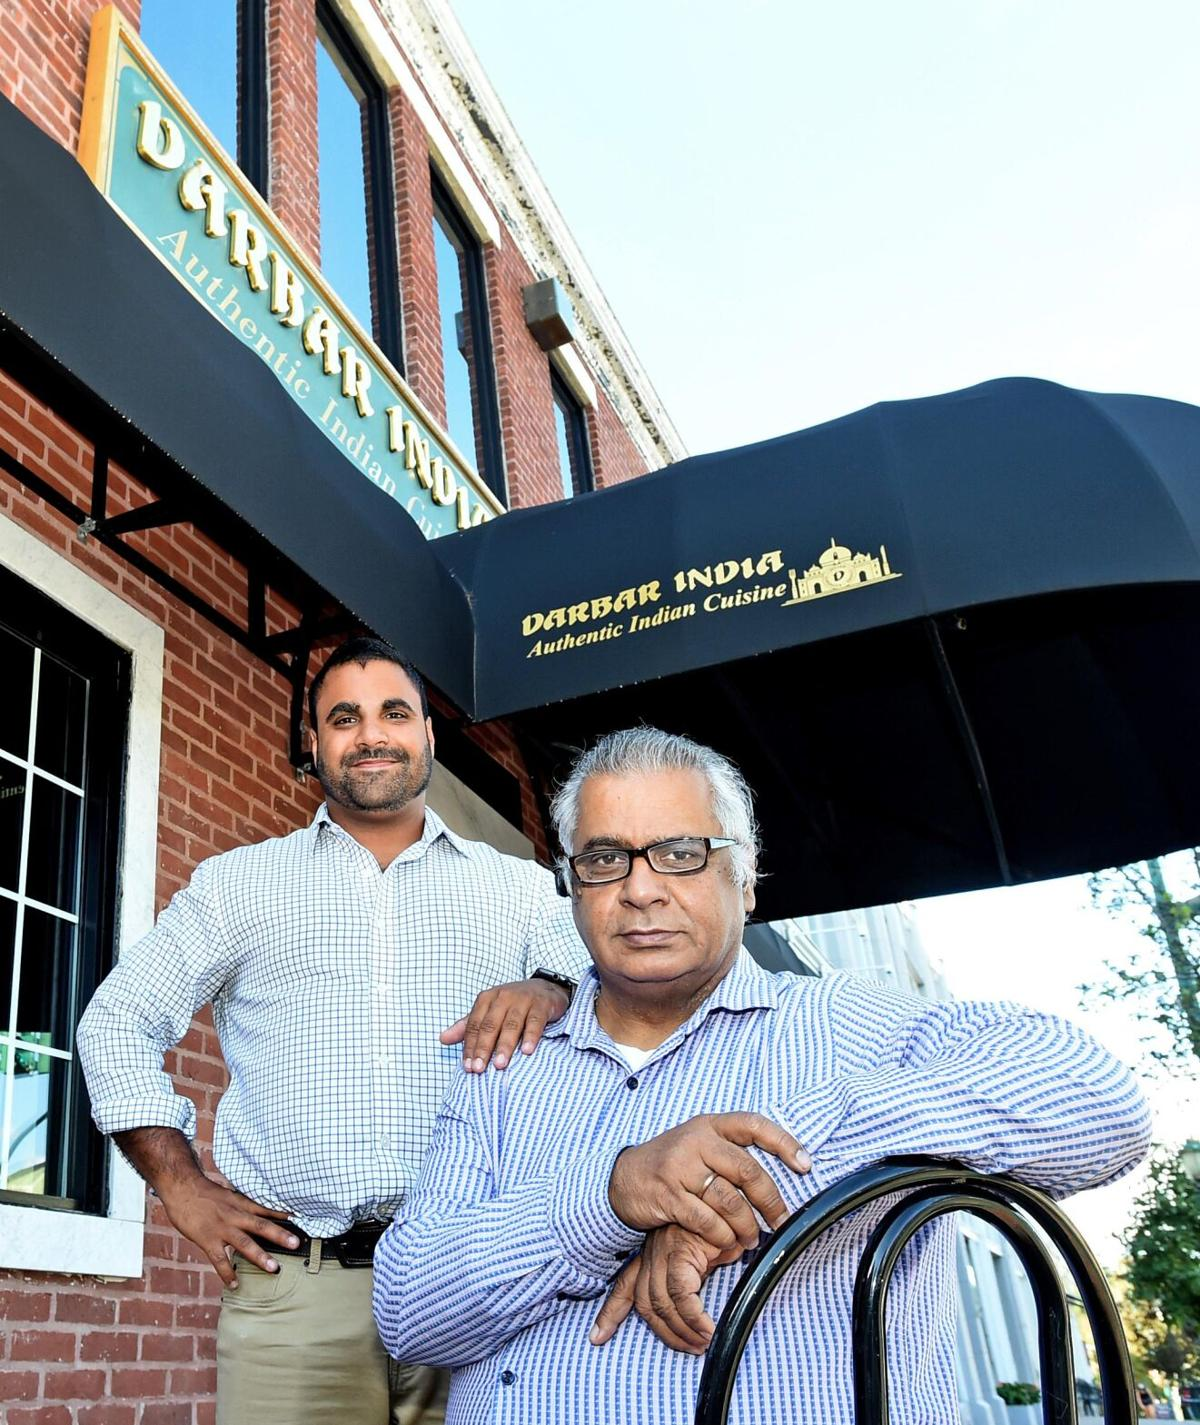 Popular Branford eatery reaches out for help amid COVID rent troubles